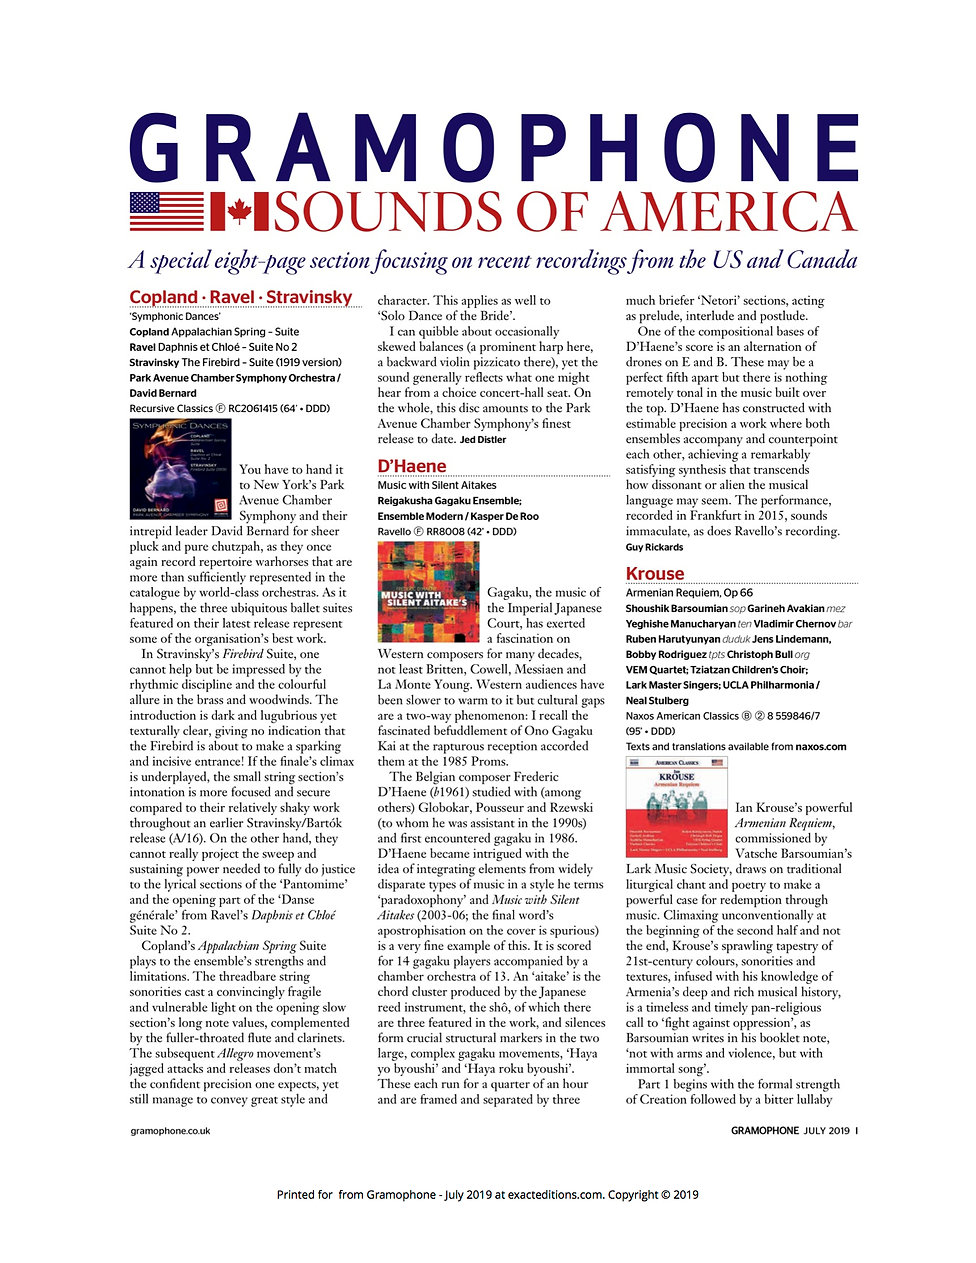 Gramophone review 6-20-19 page 1.jpg